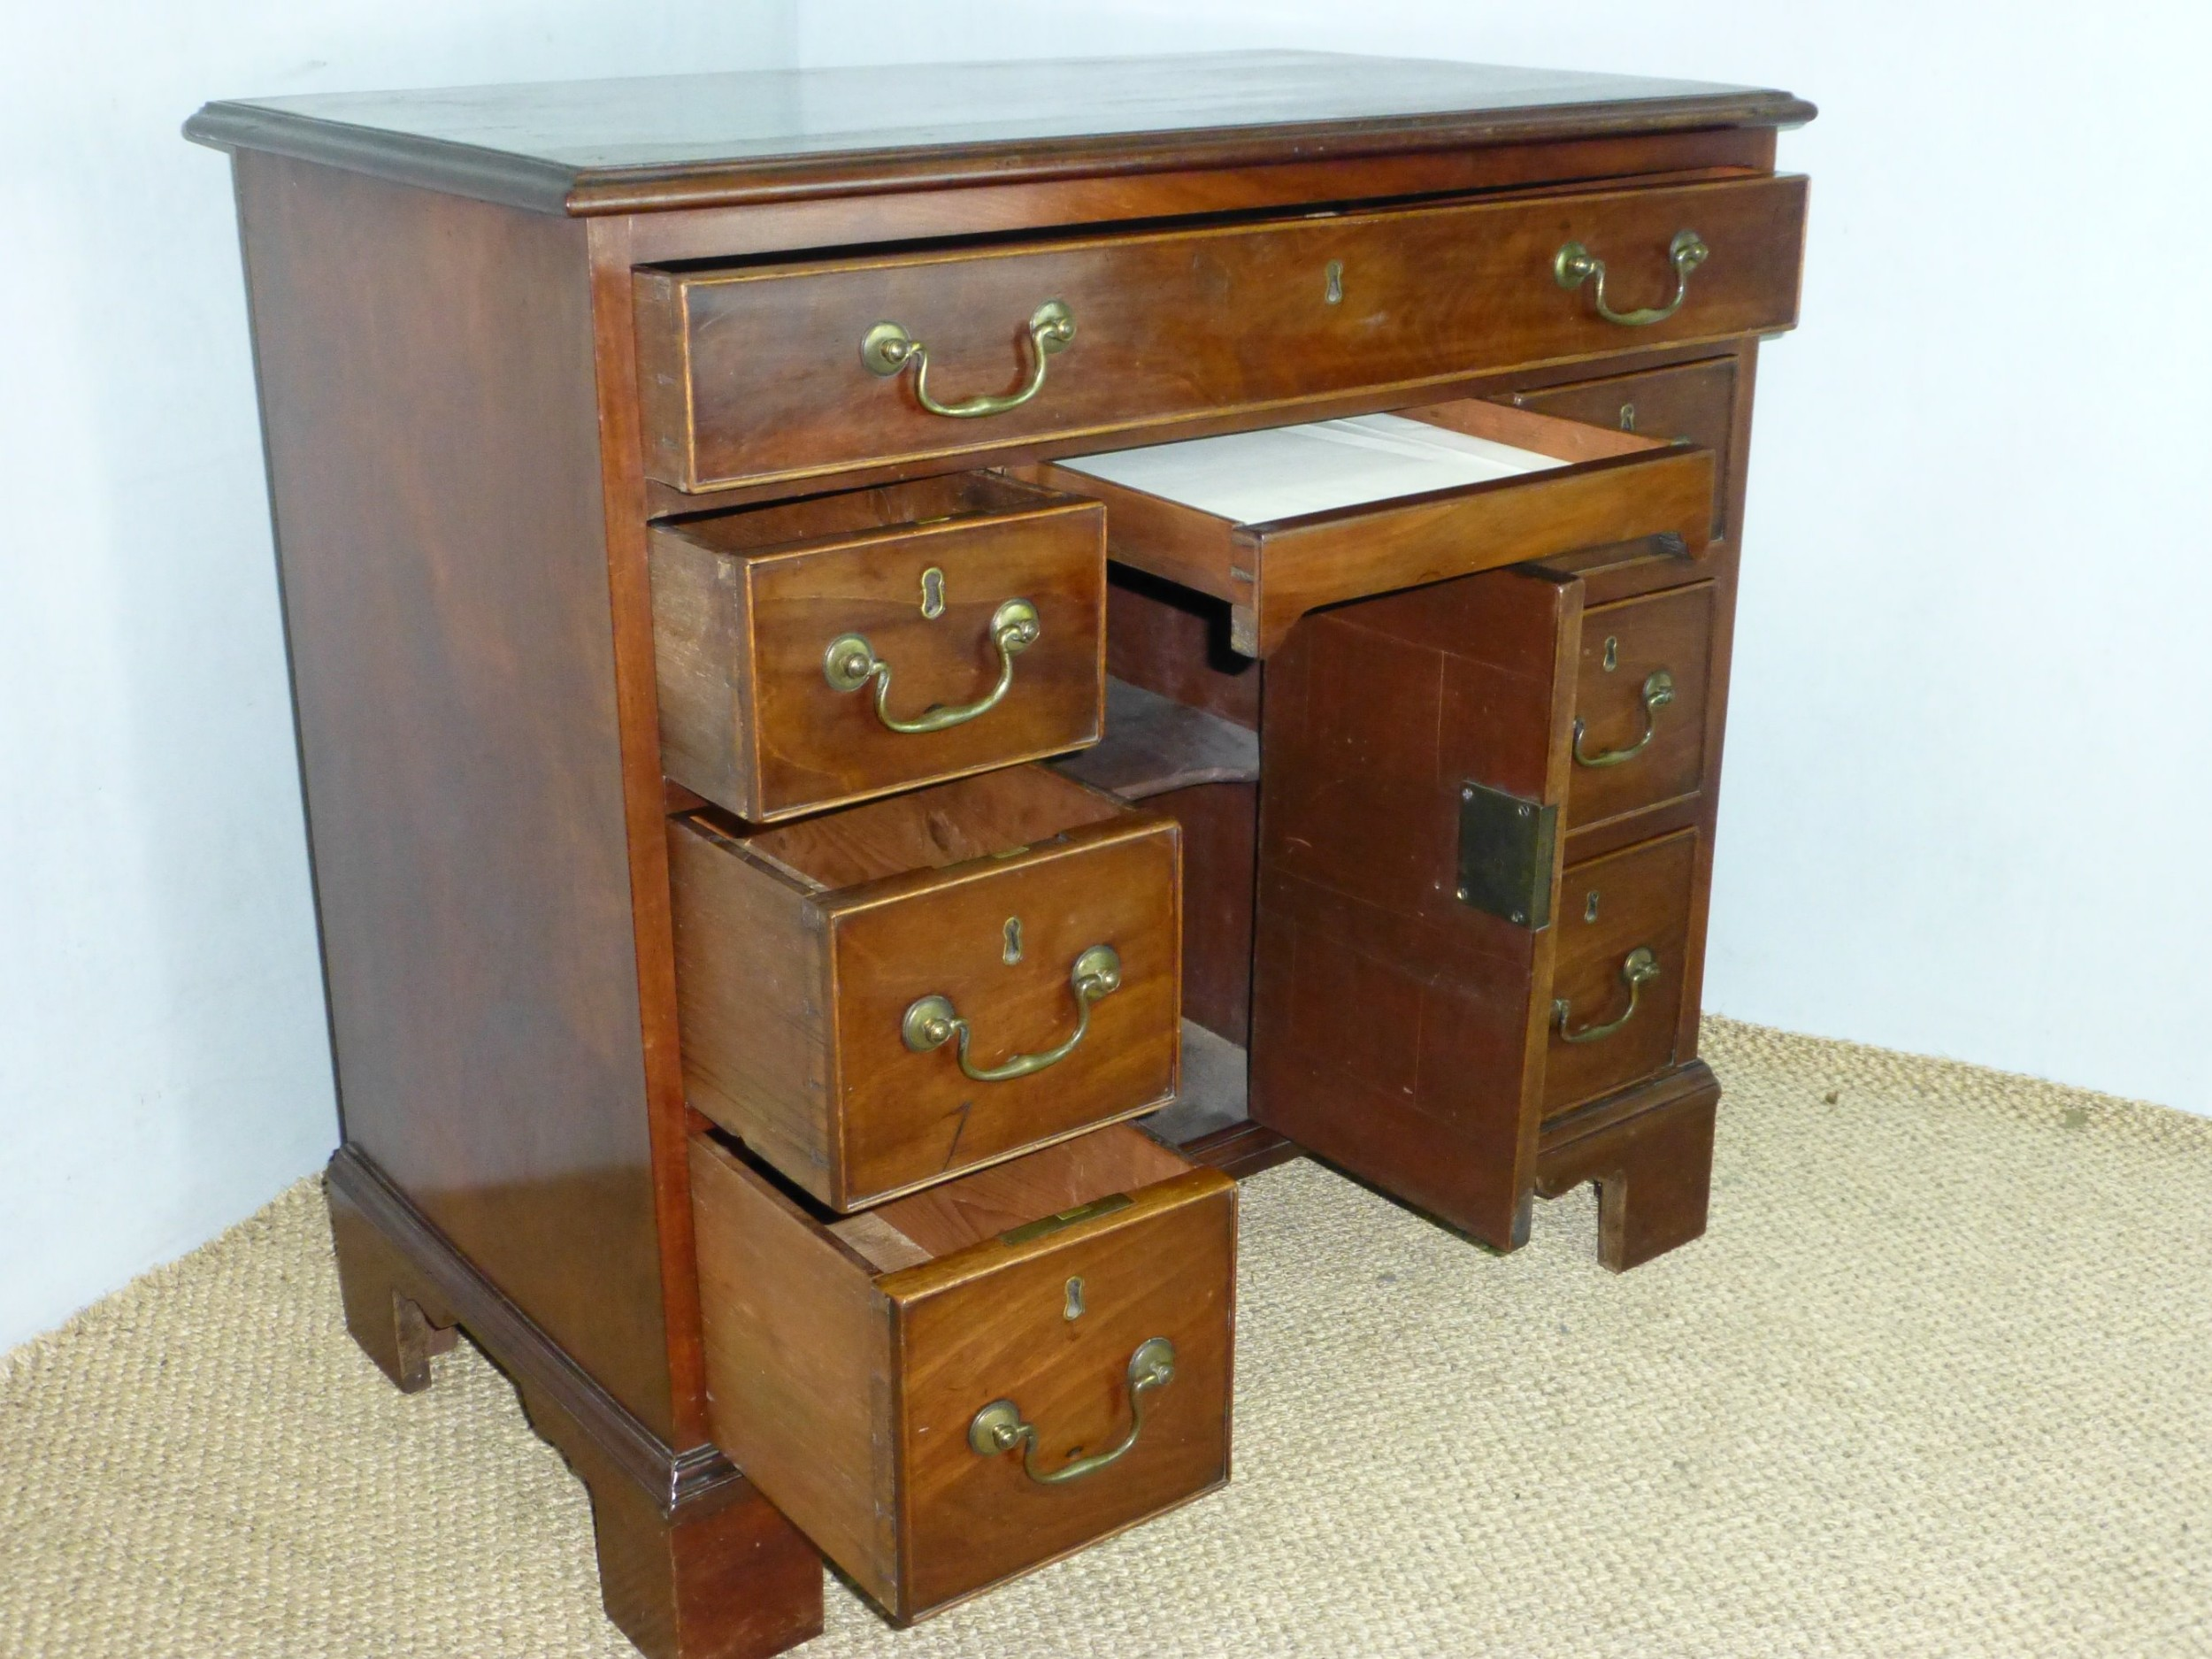 18th century georgian 30 small kneehole mahogany writing desk c 1760